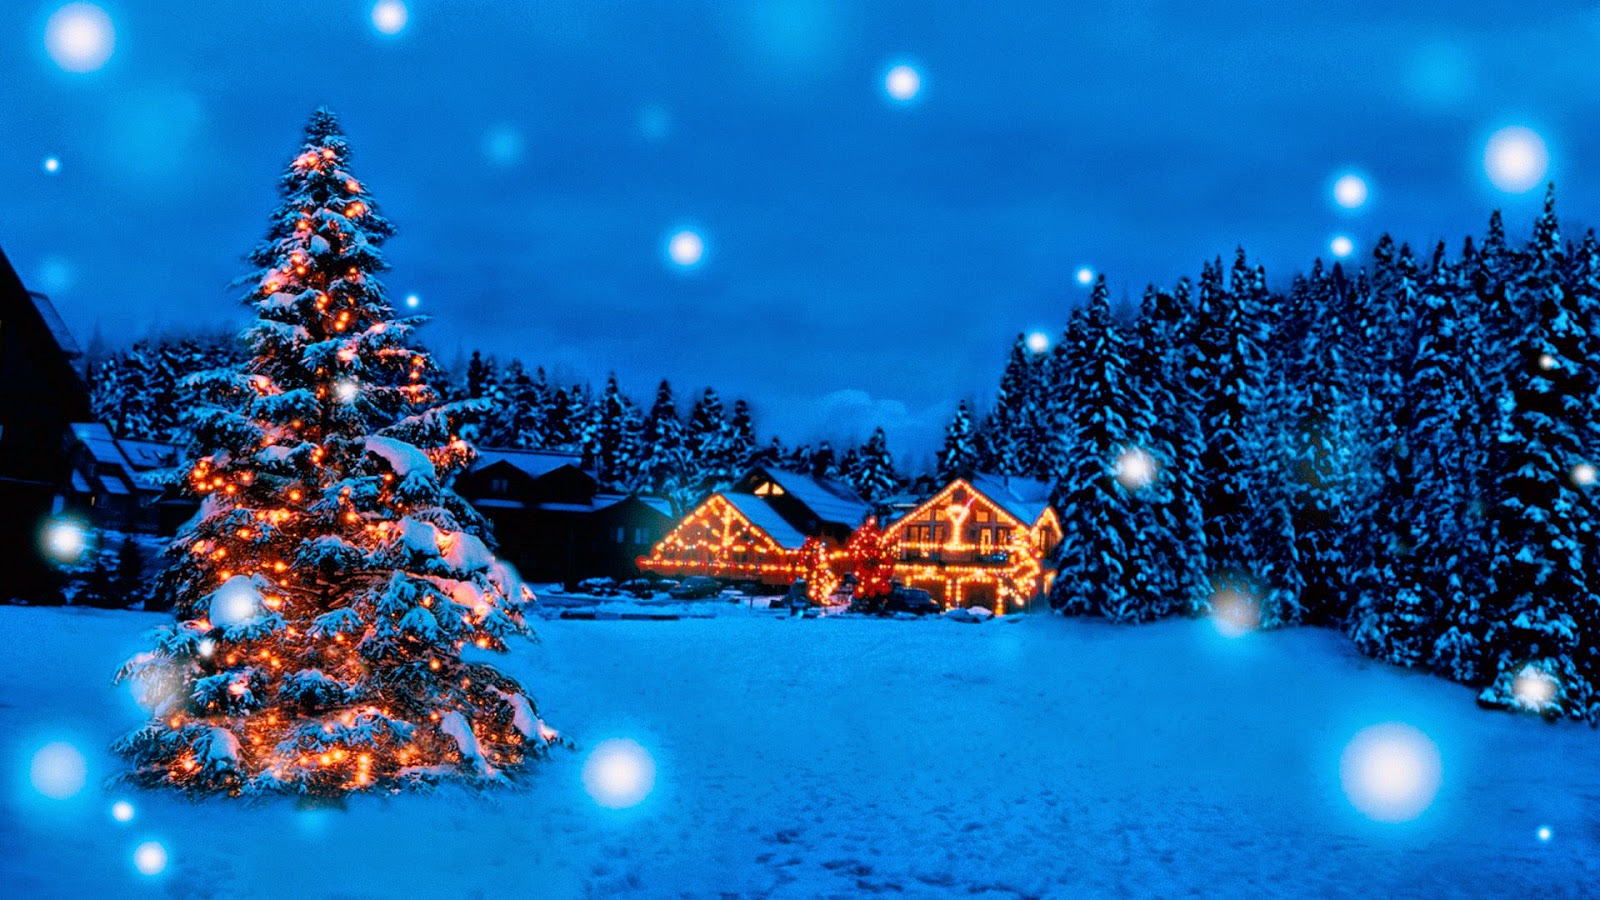 100% Desktop Quality HD Wallpapers 1080p Free Download: Top 23 Christmas Wallpaper HD Widescreen